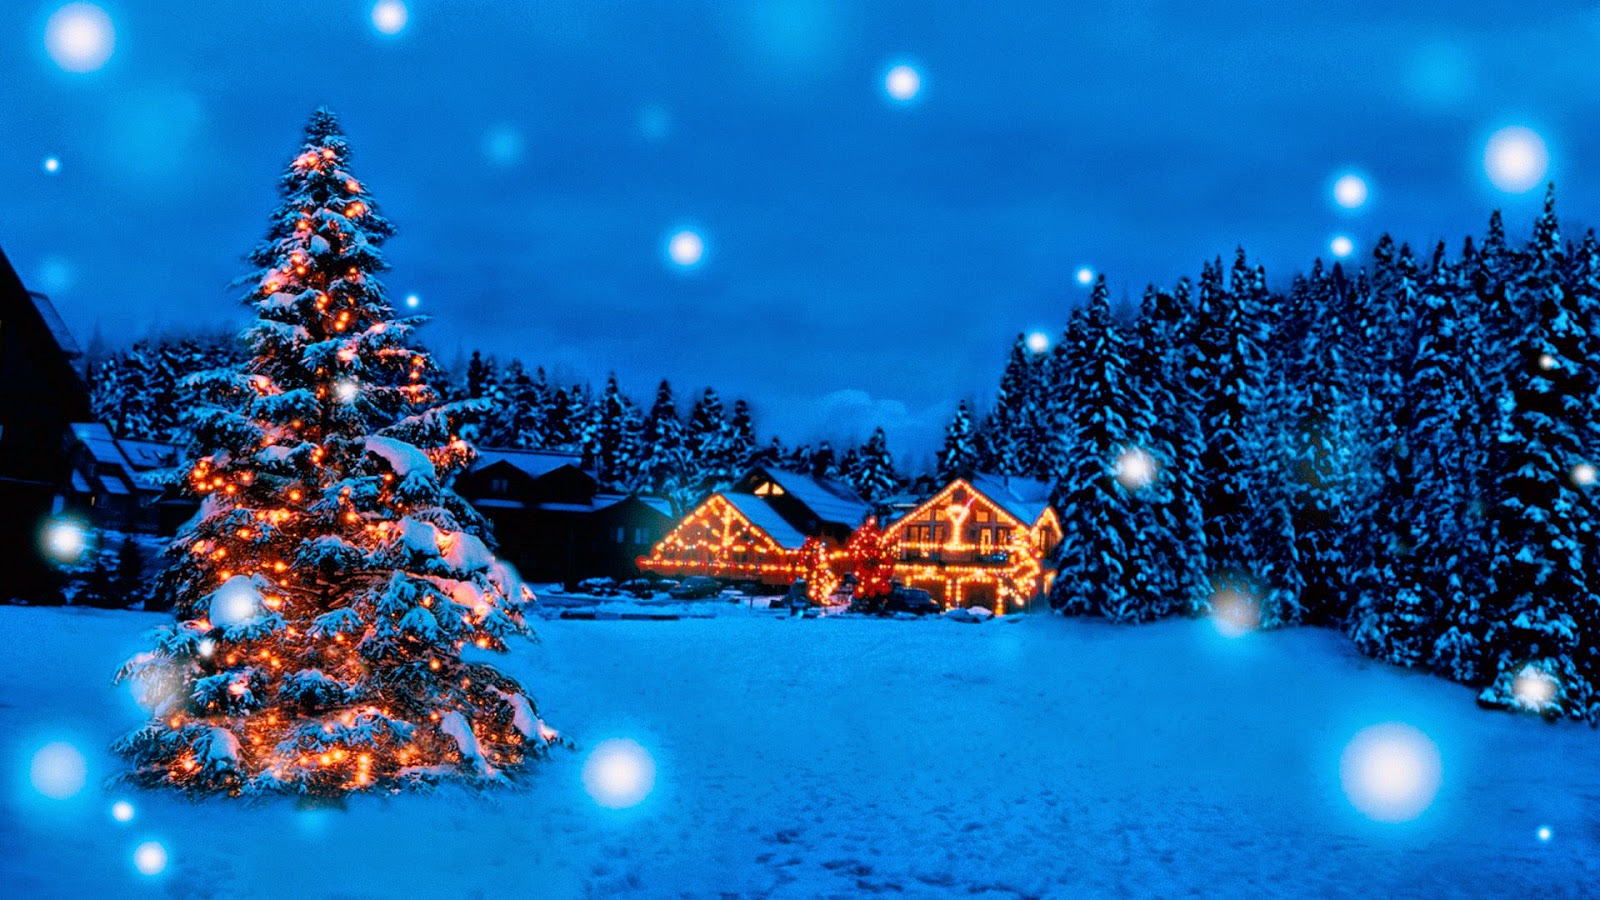 100% Desktop Quality HD Wallpapers 1080p Free Download: Top 23 Christmas Wallpaper HD Widescreen